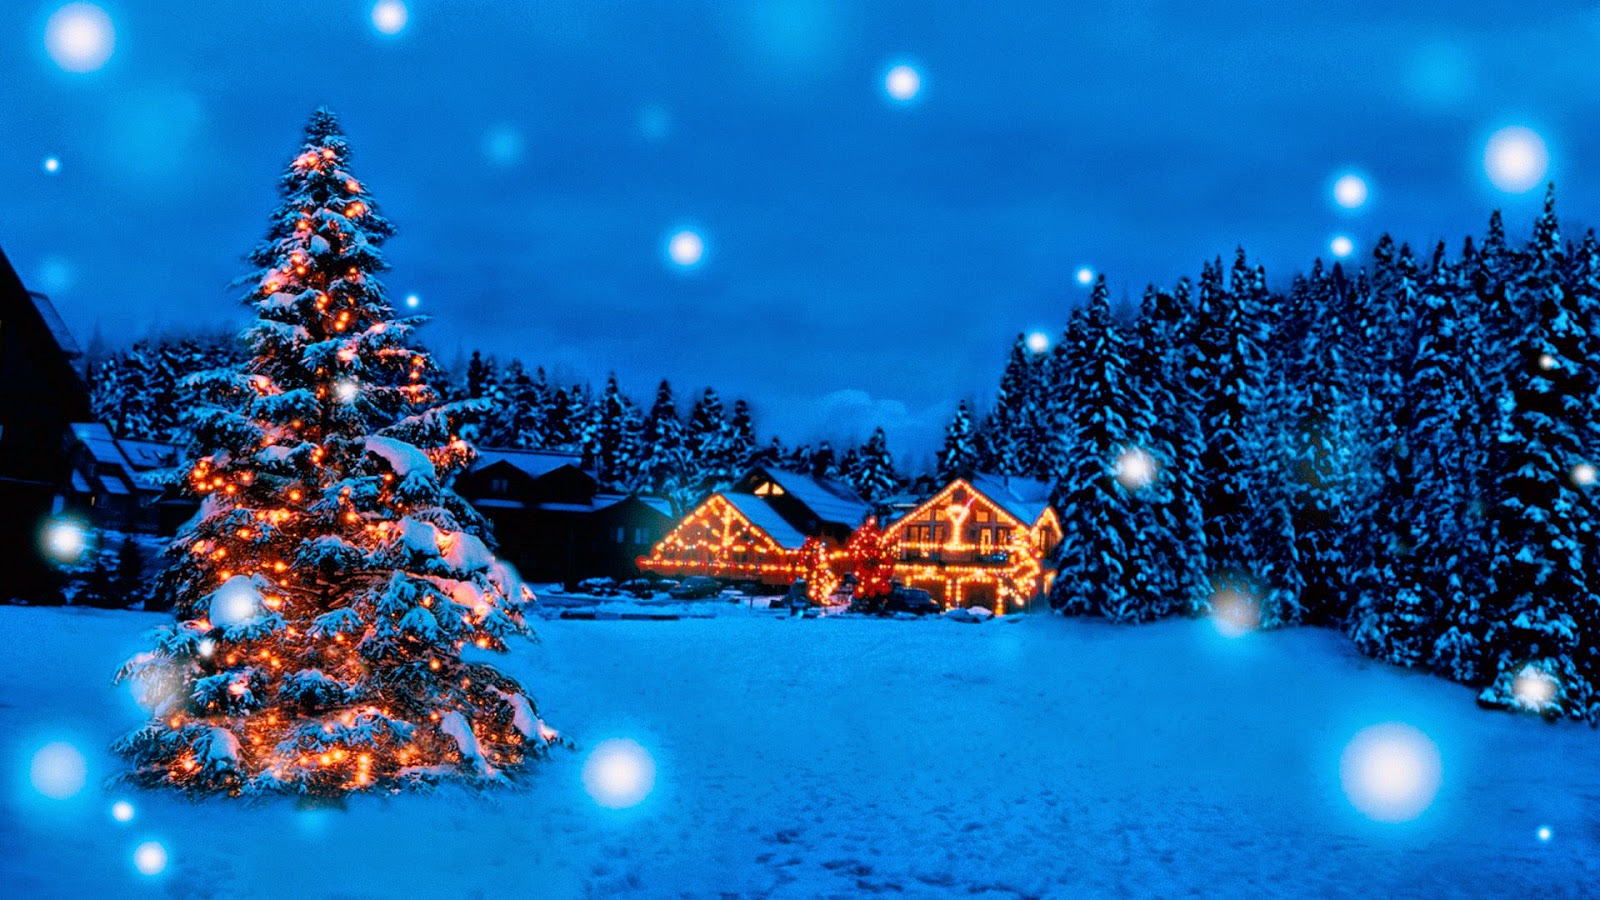 100% Desktop Quality HD Wallpapers 1080p Free Download: Top 23 Christmas Wallpaper HD Widescreen